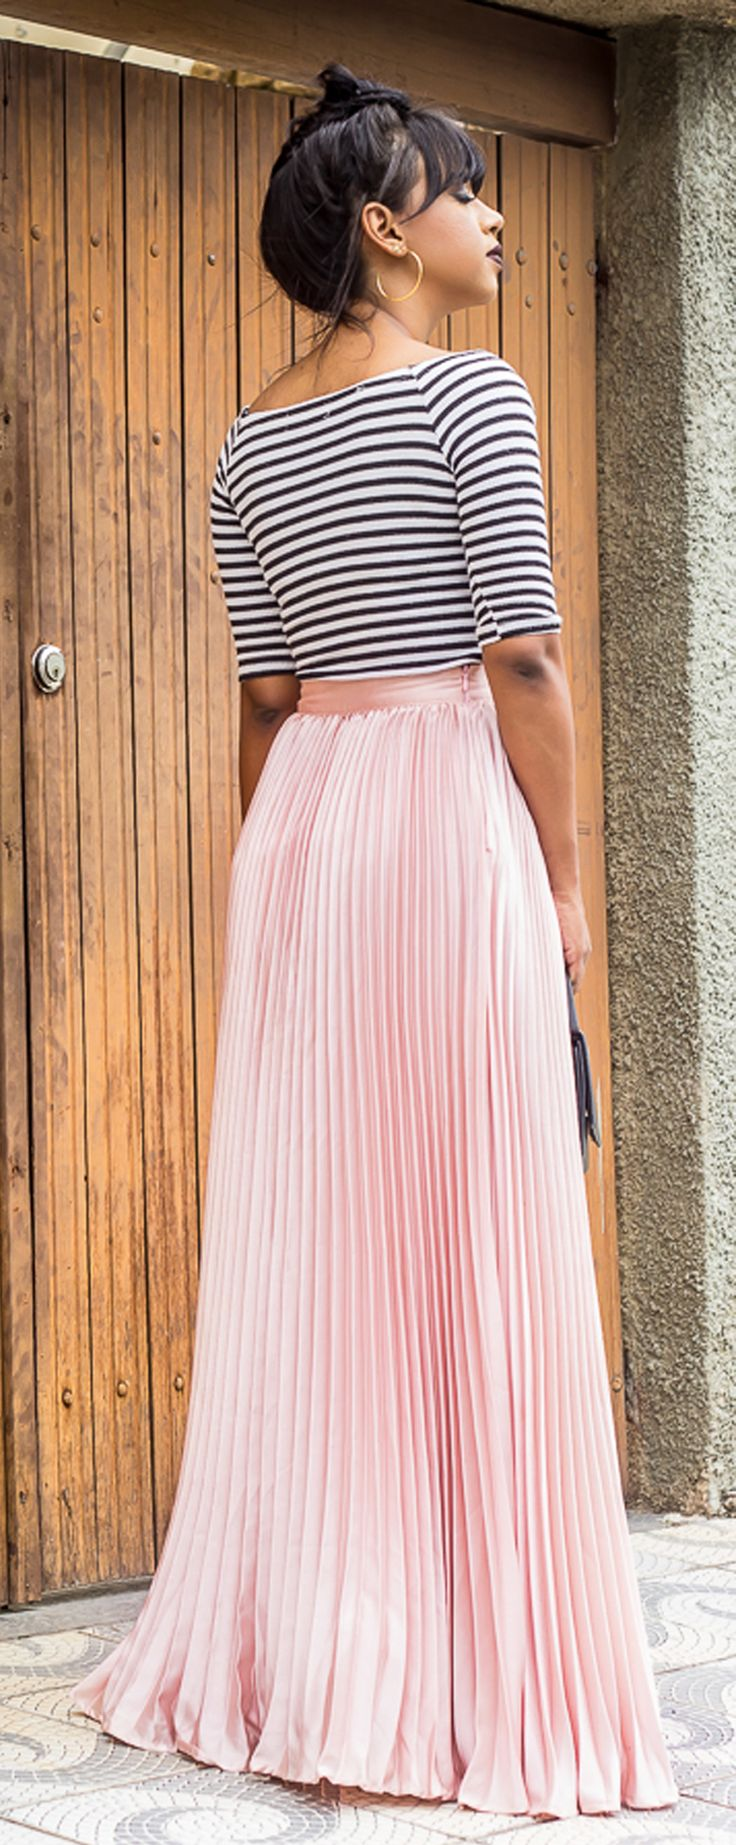 Love the feeling. Pink tulle skirt with crop stripe outfit.